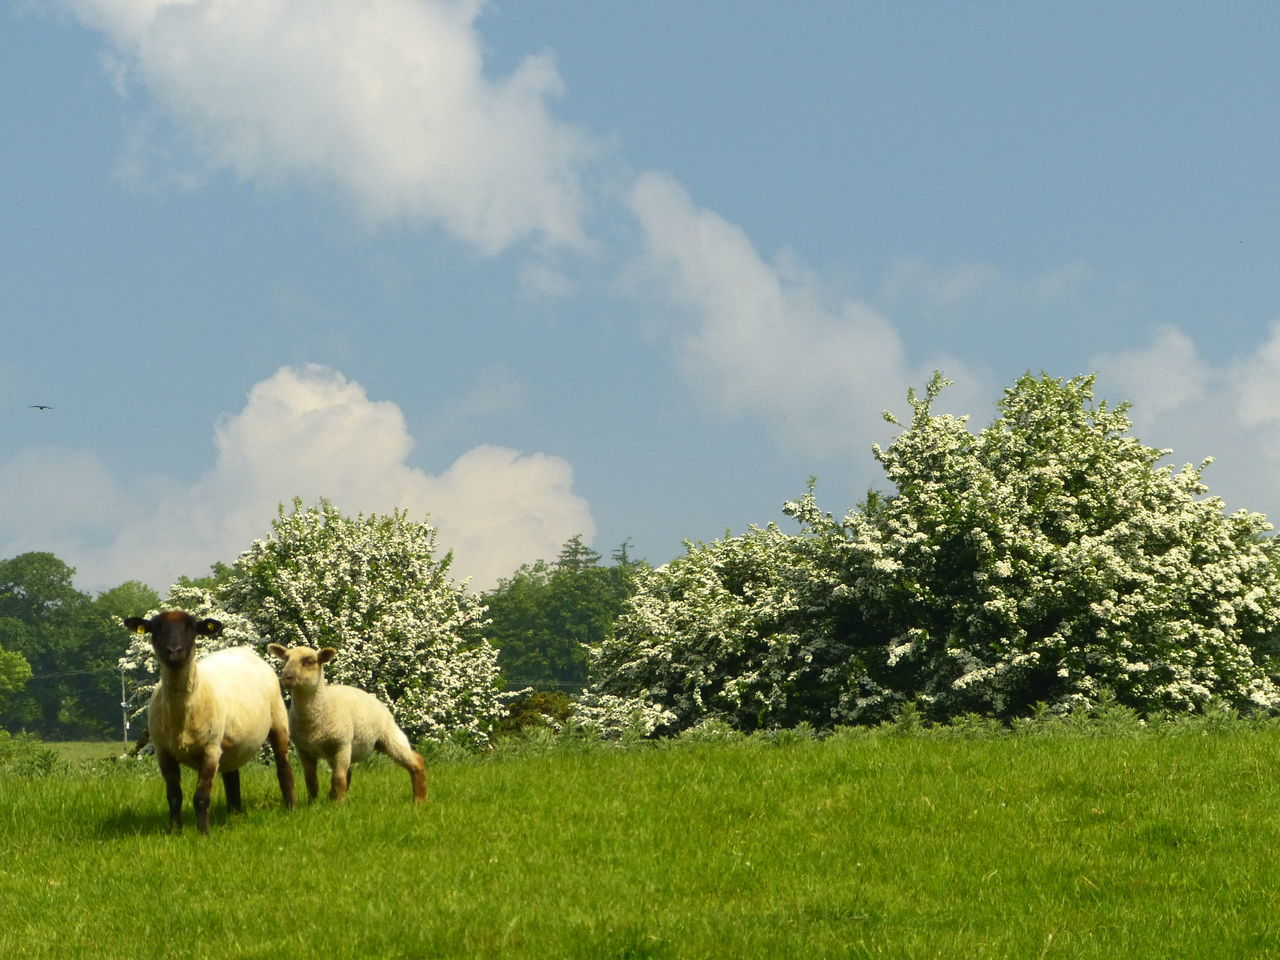 Early summer, Wicklow Animal Themes Cloud - Sky Day Field Grazing Hawthorn Ireland Lamb Livestock No People Outdoors Sheep Tree Wicklow